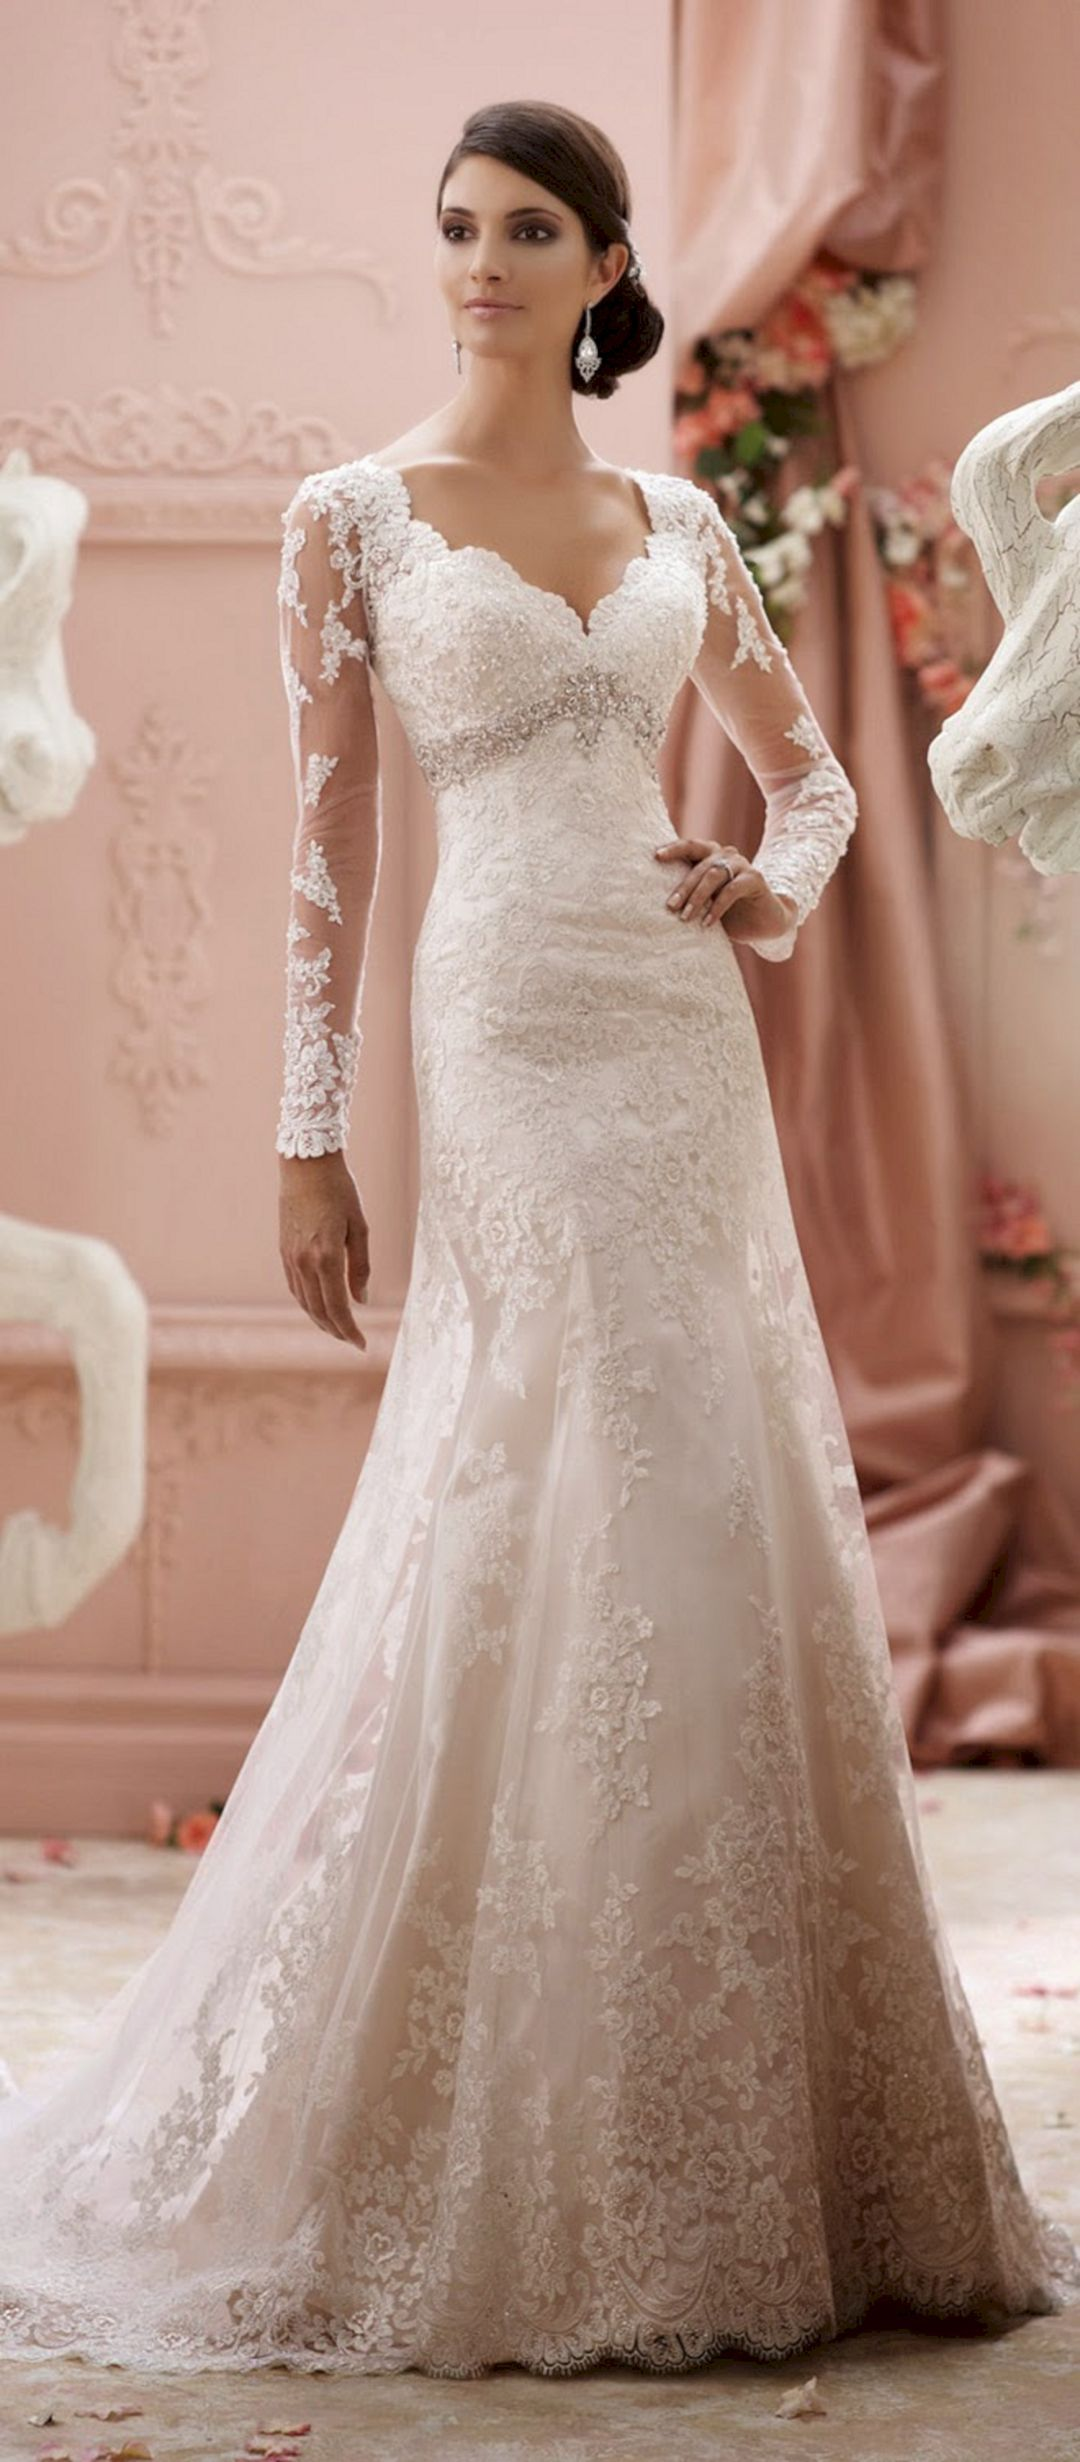 Romantic Winter Wedding Dresses